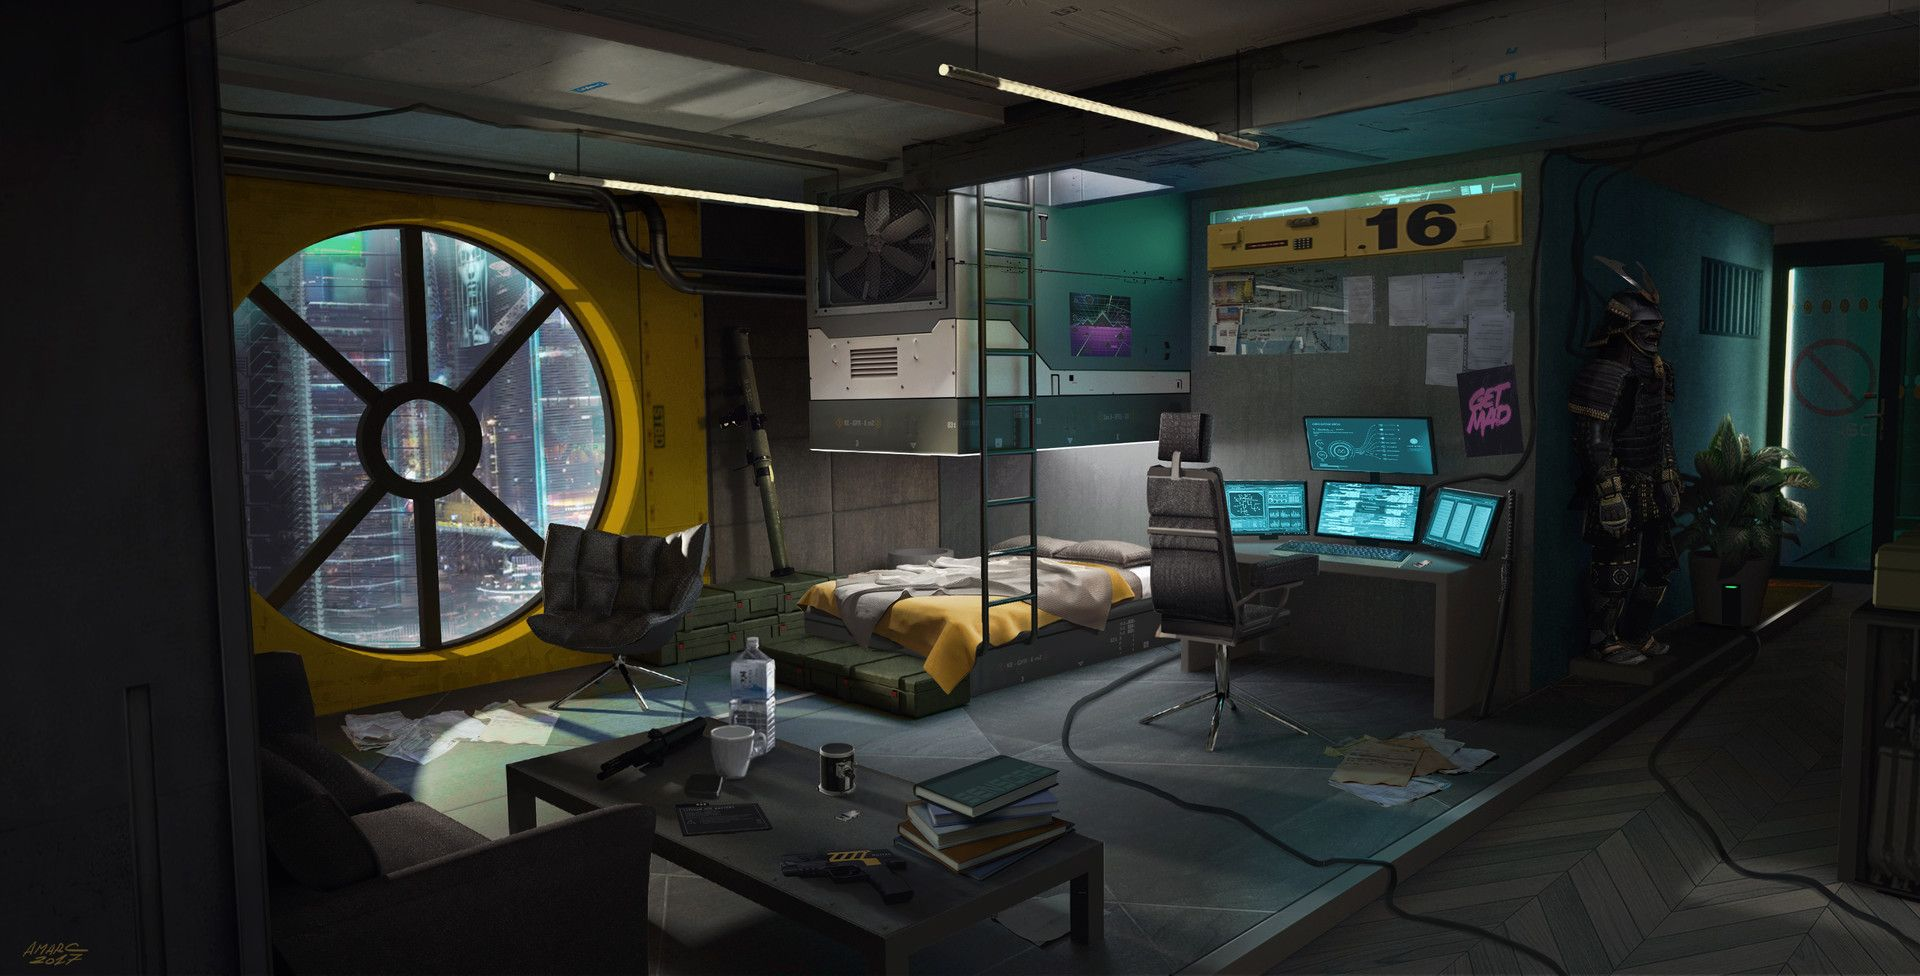 Cyberpunk Sci-Fi Spaceship Bedroom